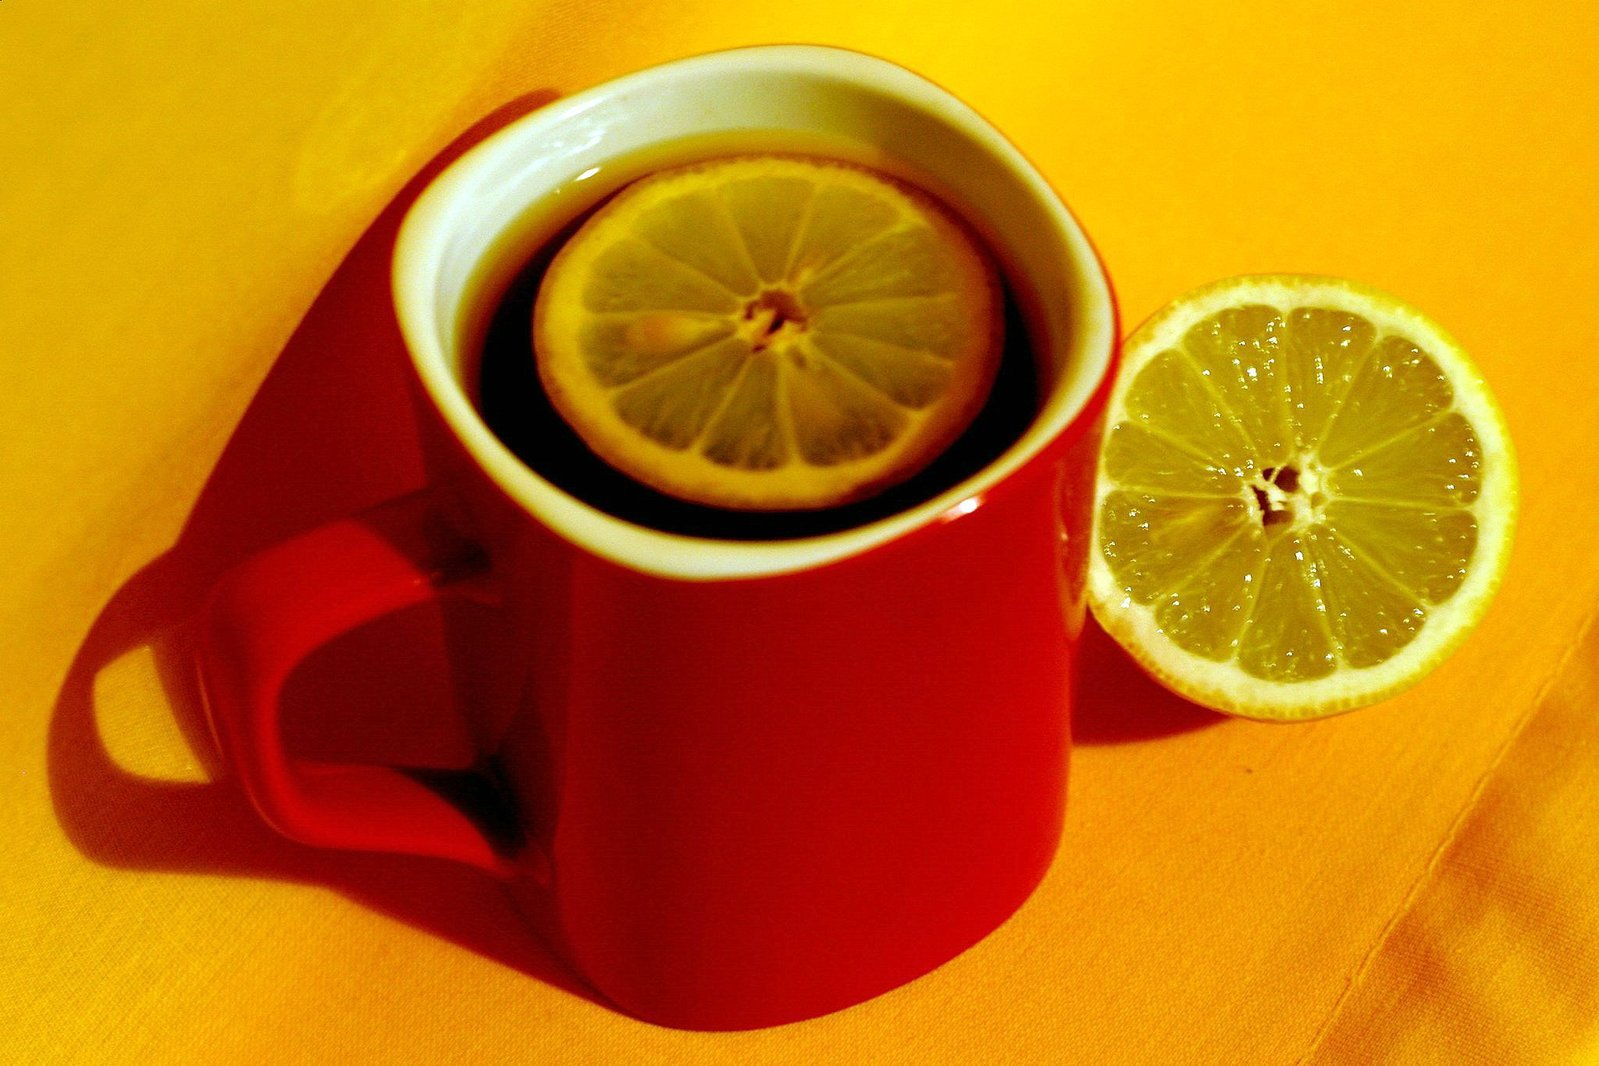 Drinking tea for health and happiness